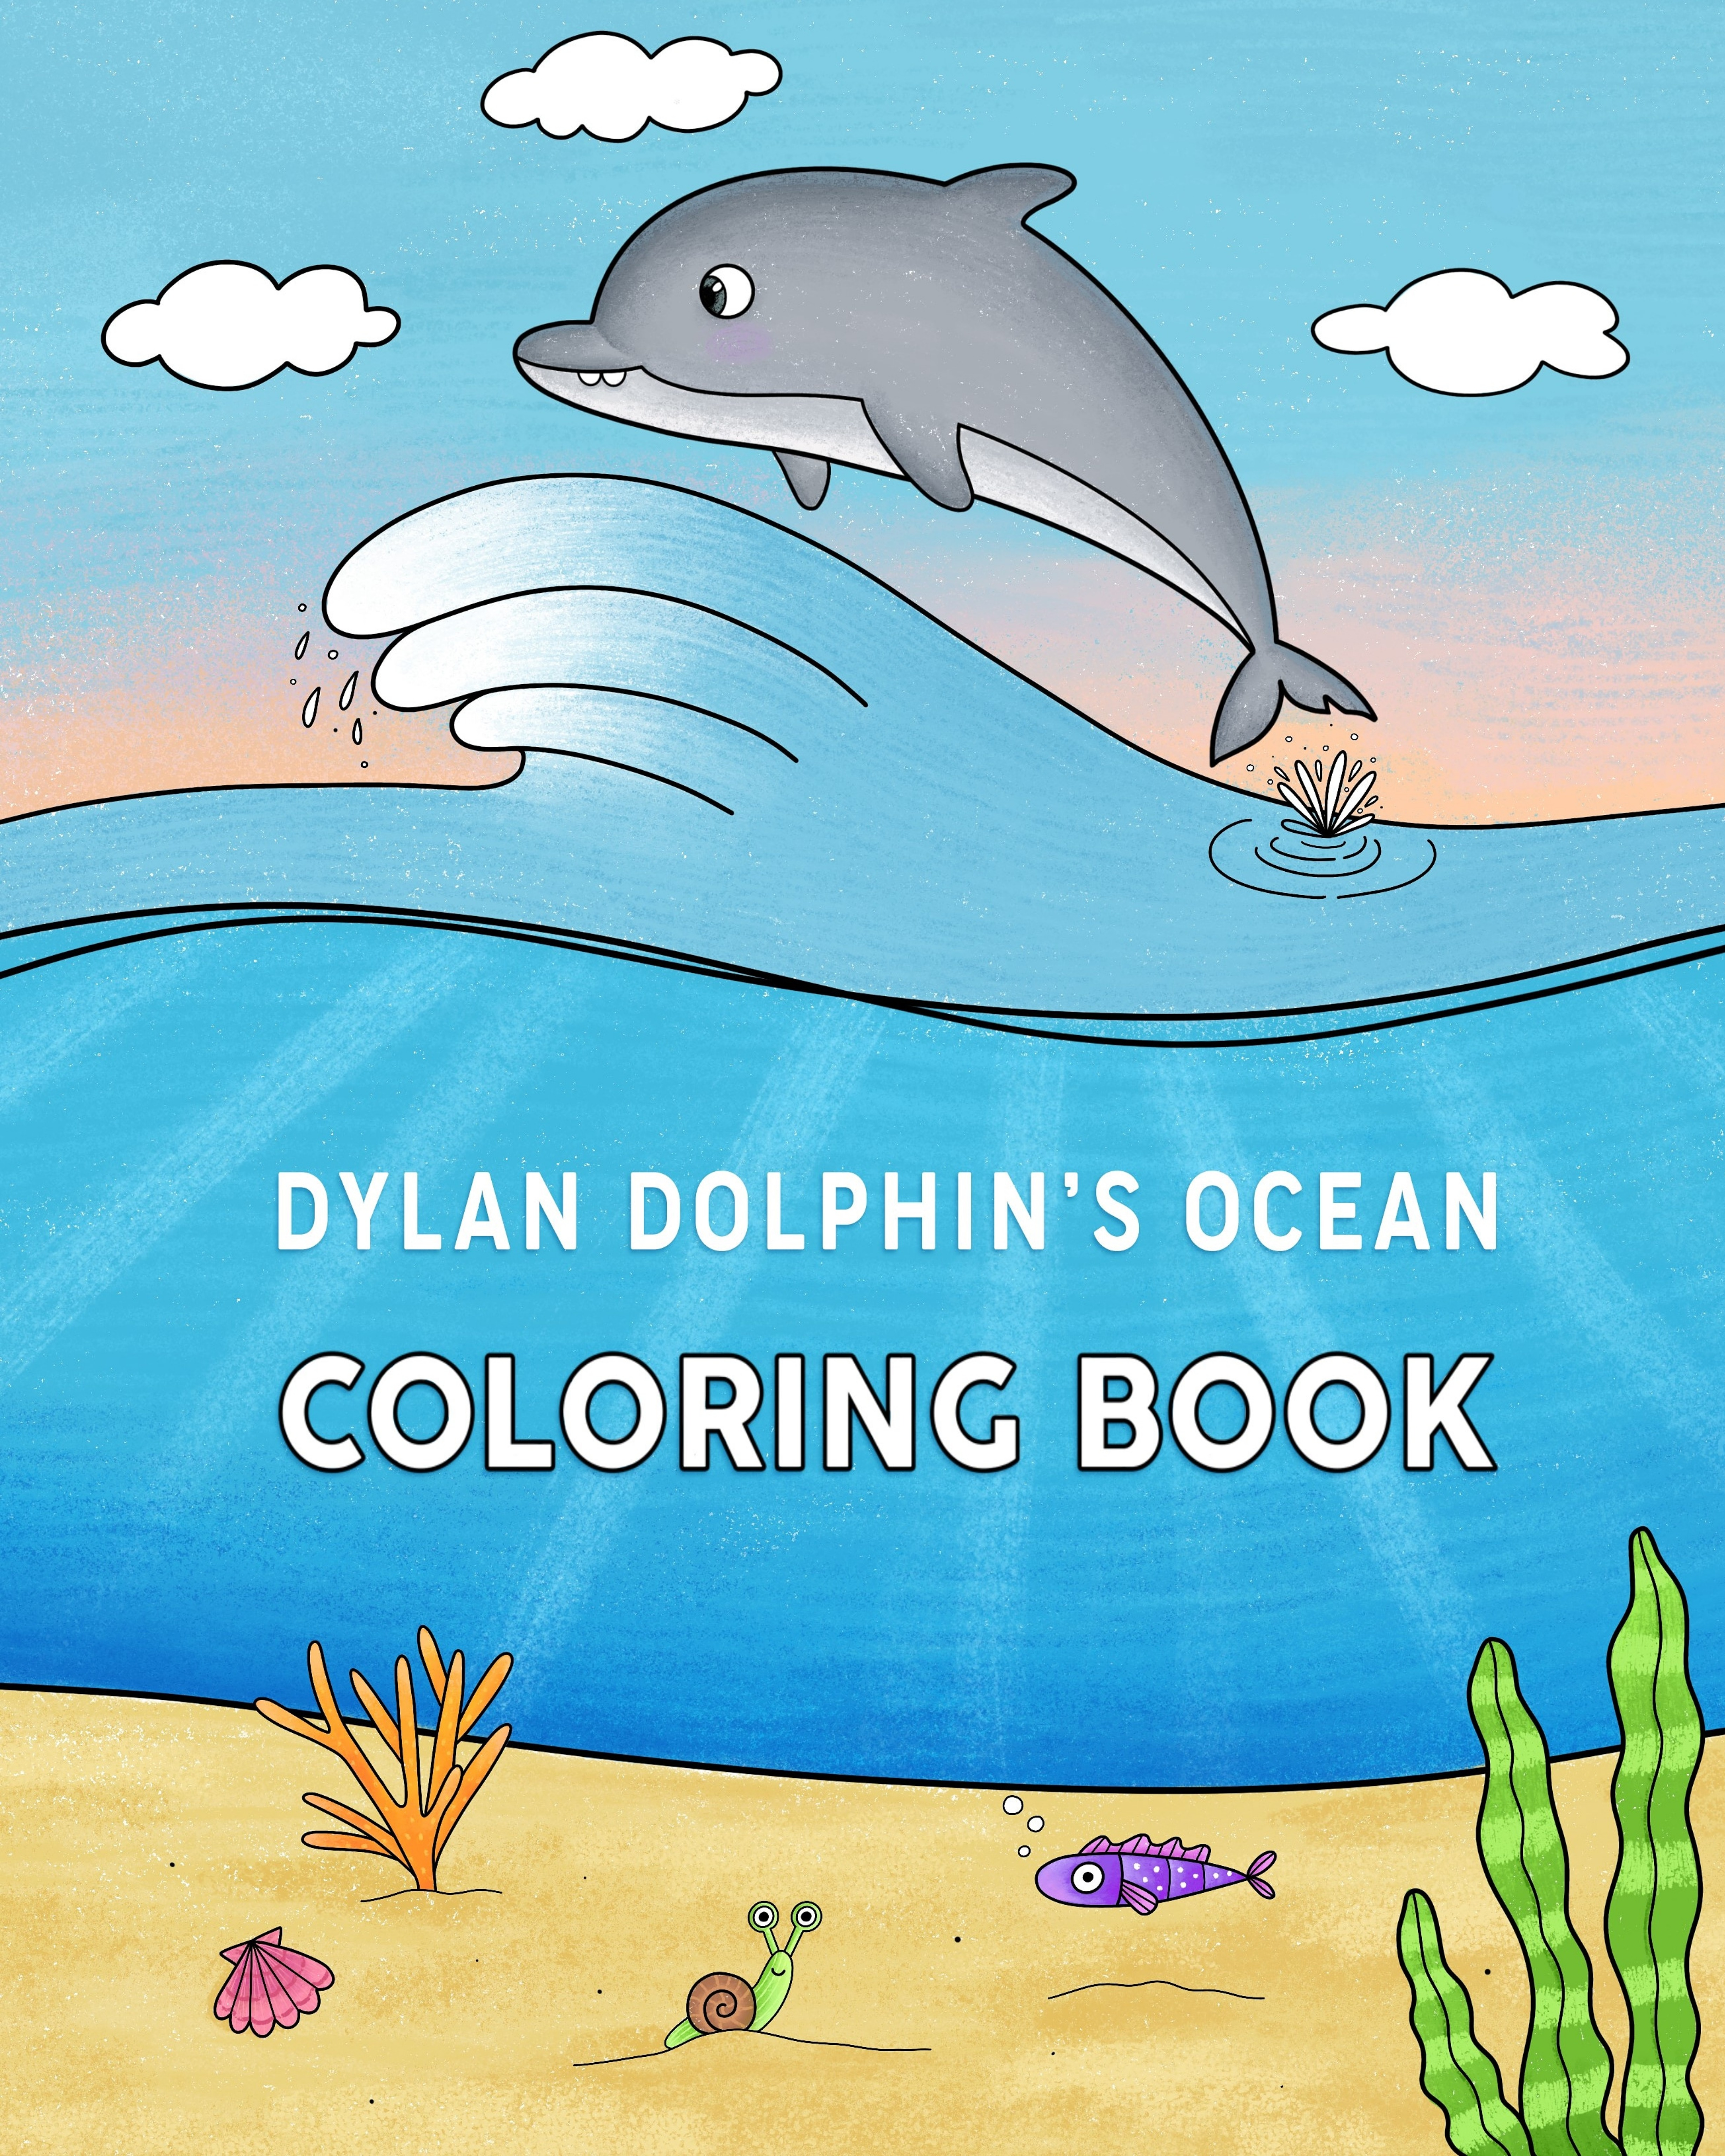 Dylan Dolphin's Ocean Coloring Book